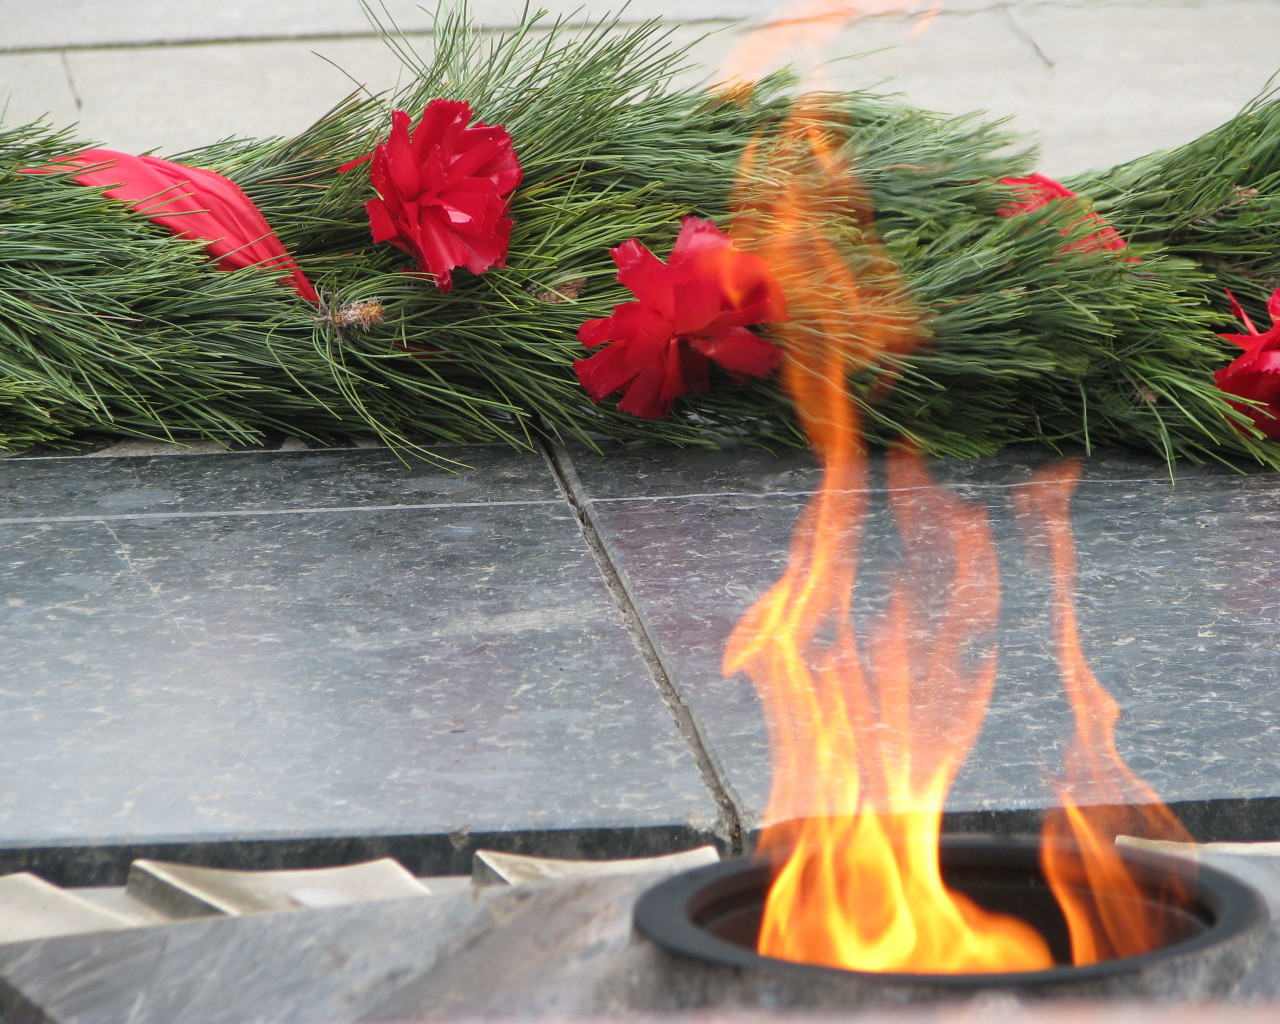 C:\Users\1\Desktop\Holidays___May_9_Wreath_and_eternal_flame_in_Victory_Day_May_9_078744_10.jpg